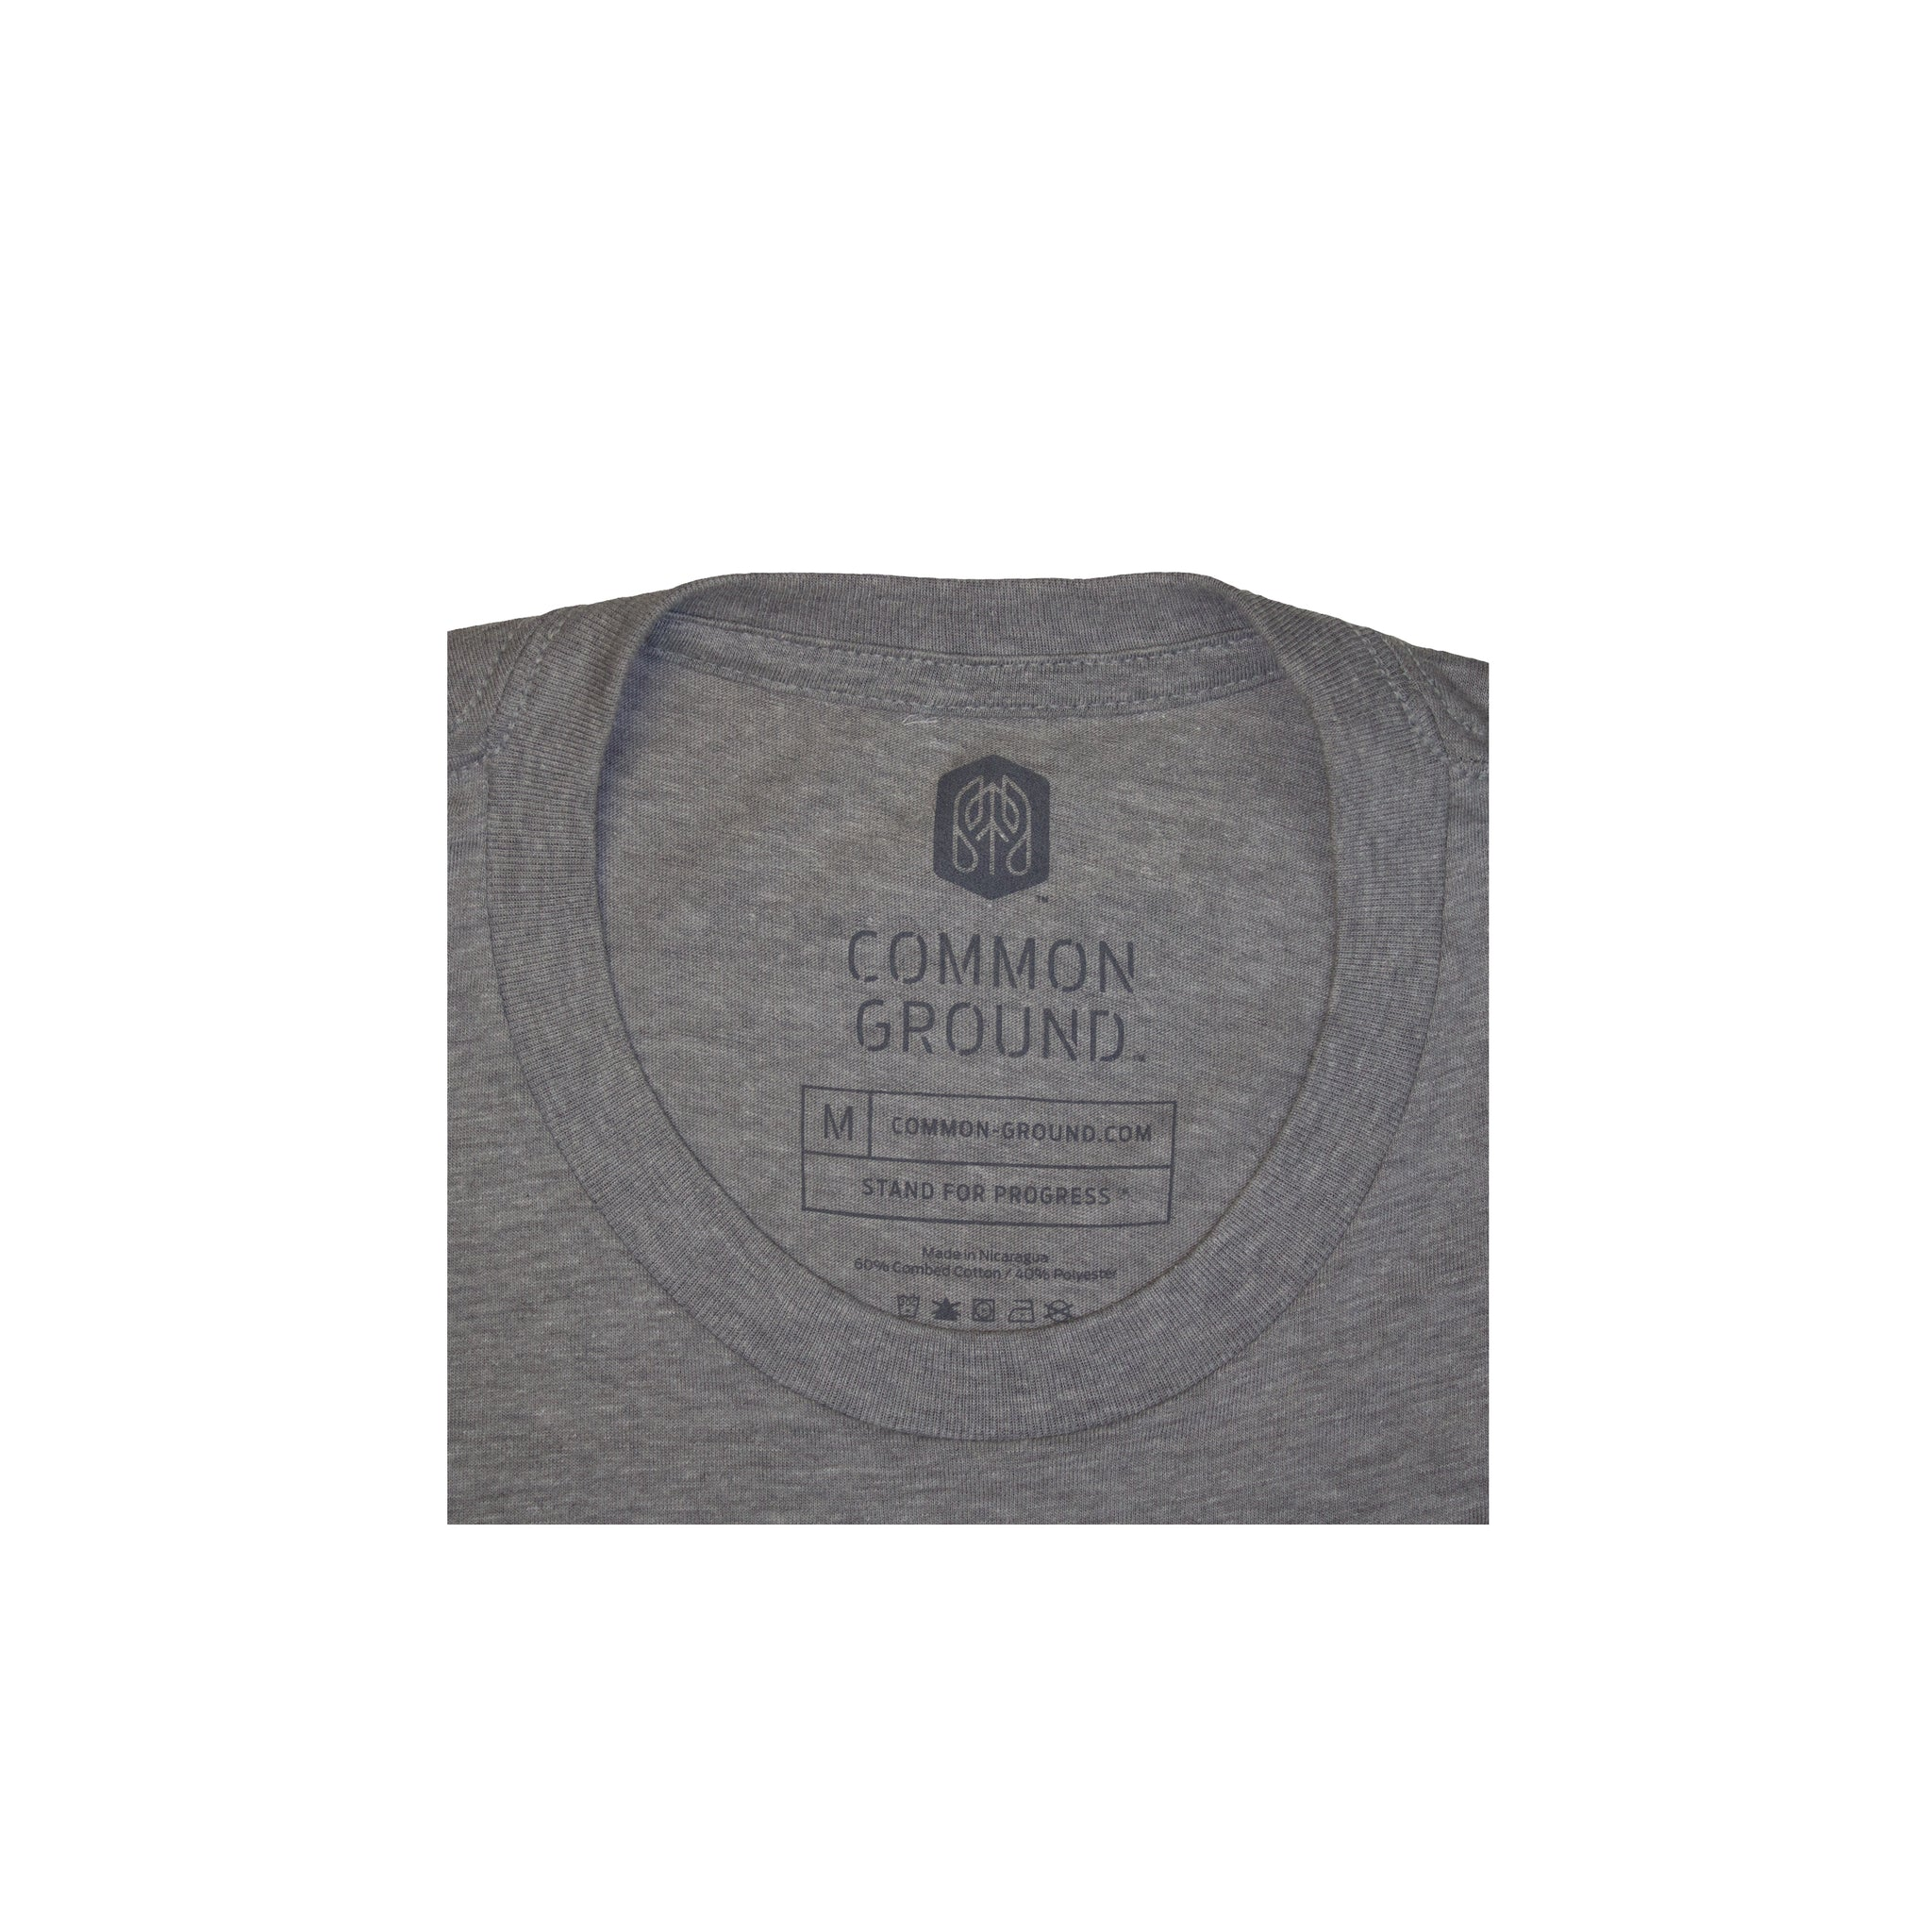 Dark_Heather_Gray - Common Ground T shirt Neck Tag View